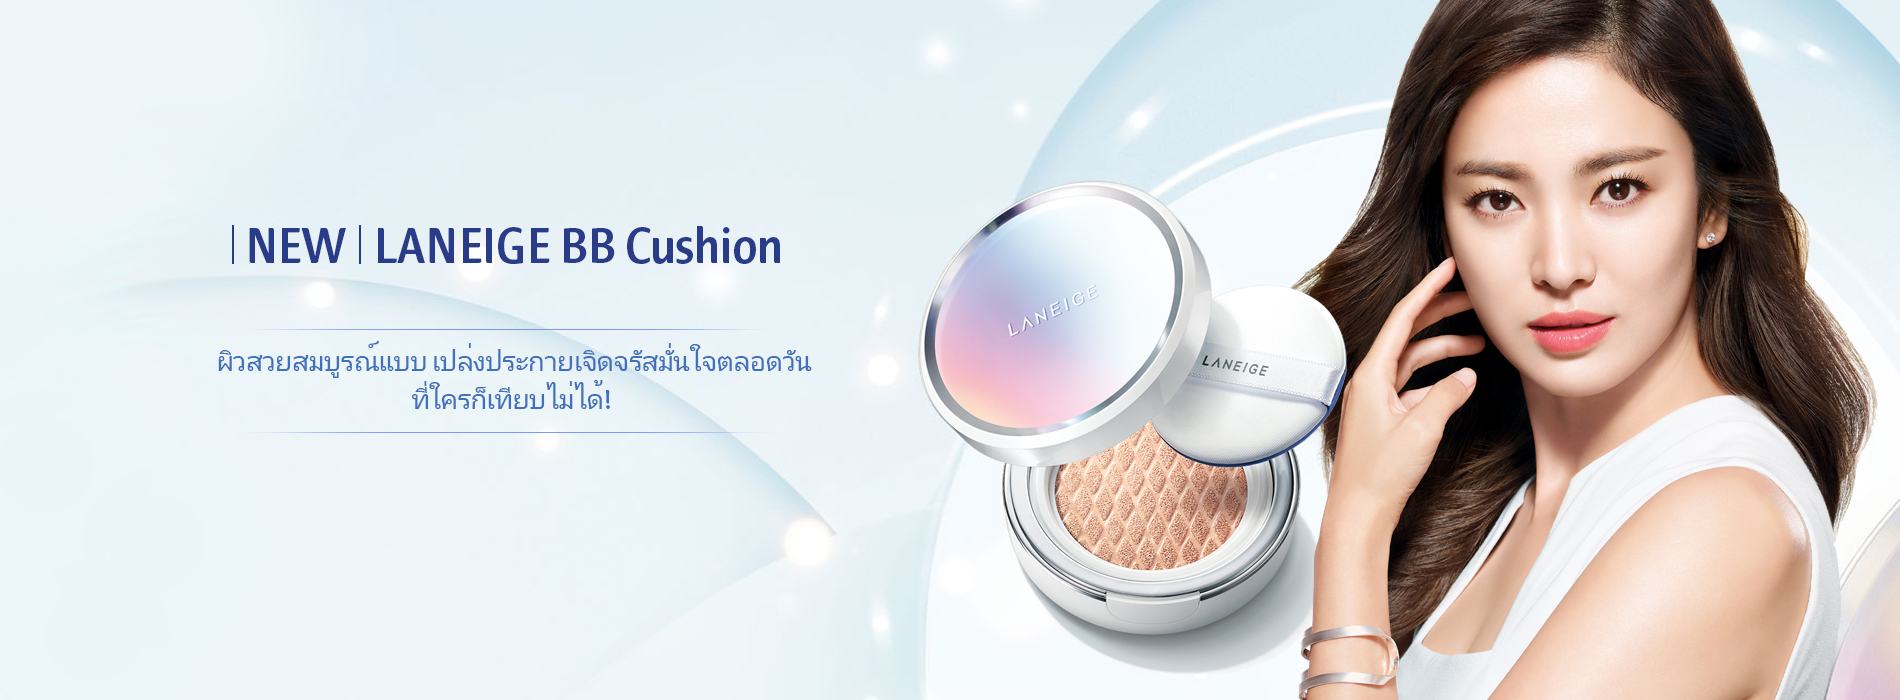 NEW LANEIGE BB Cushion Pore Control